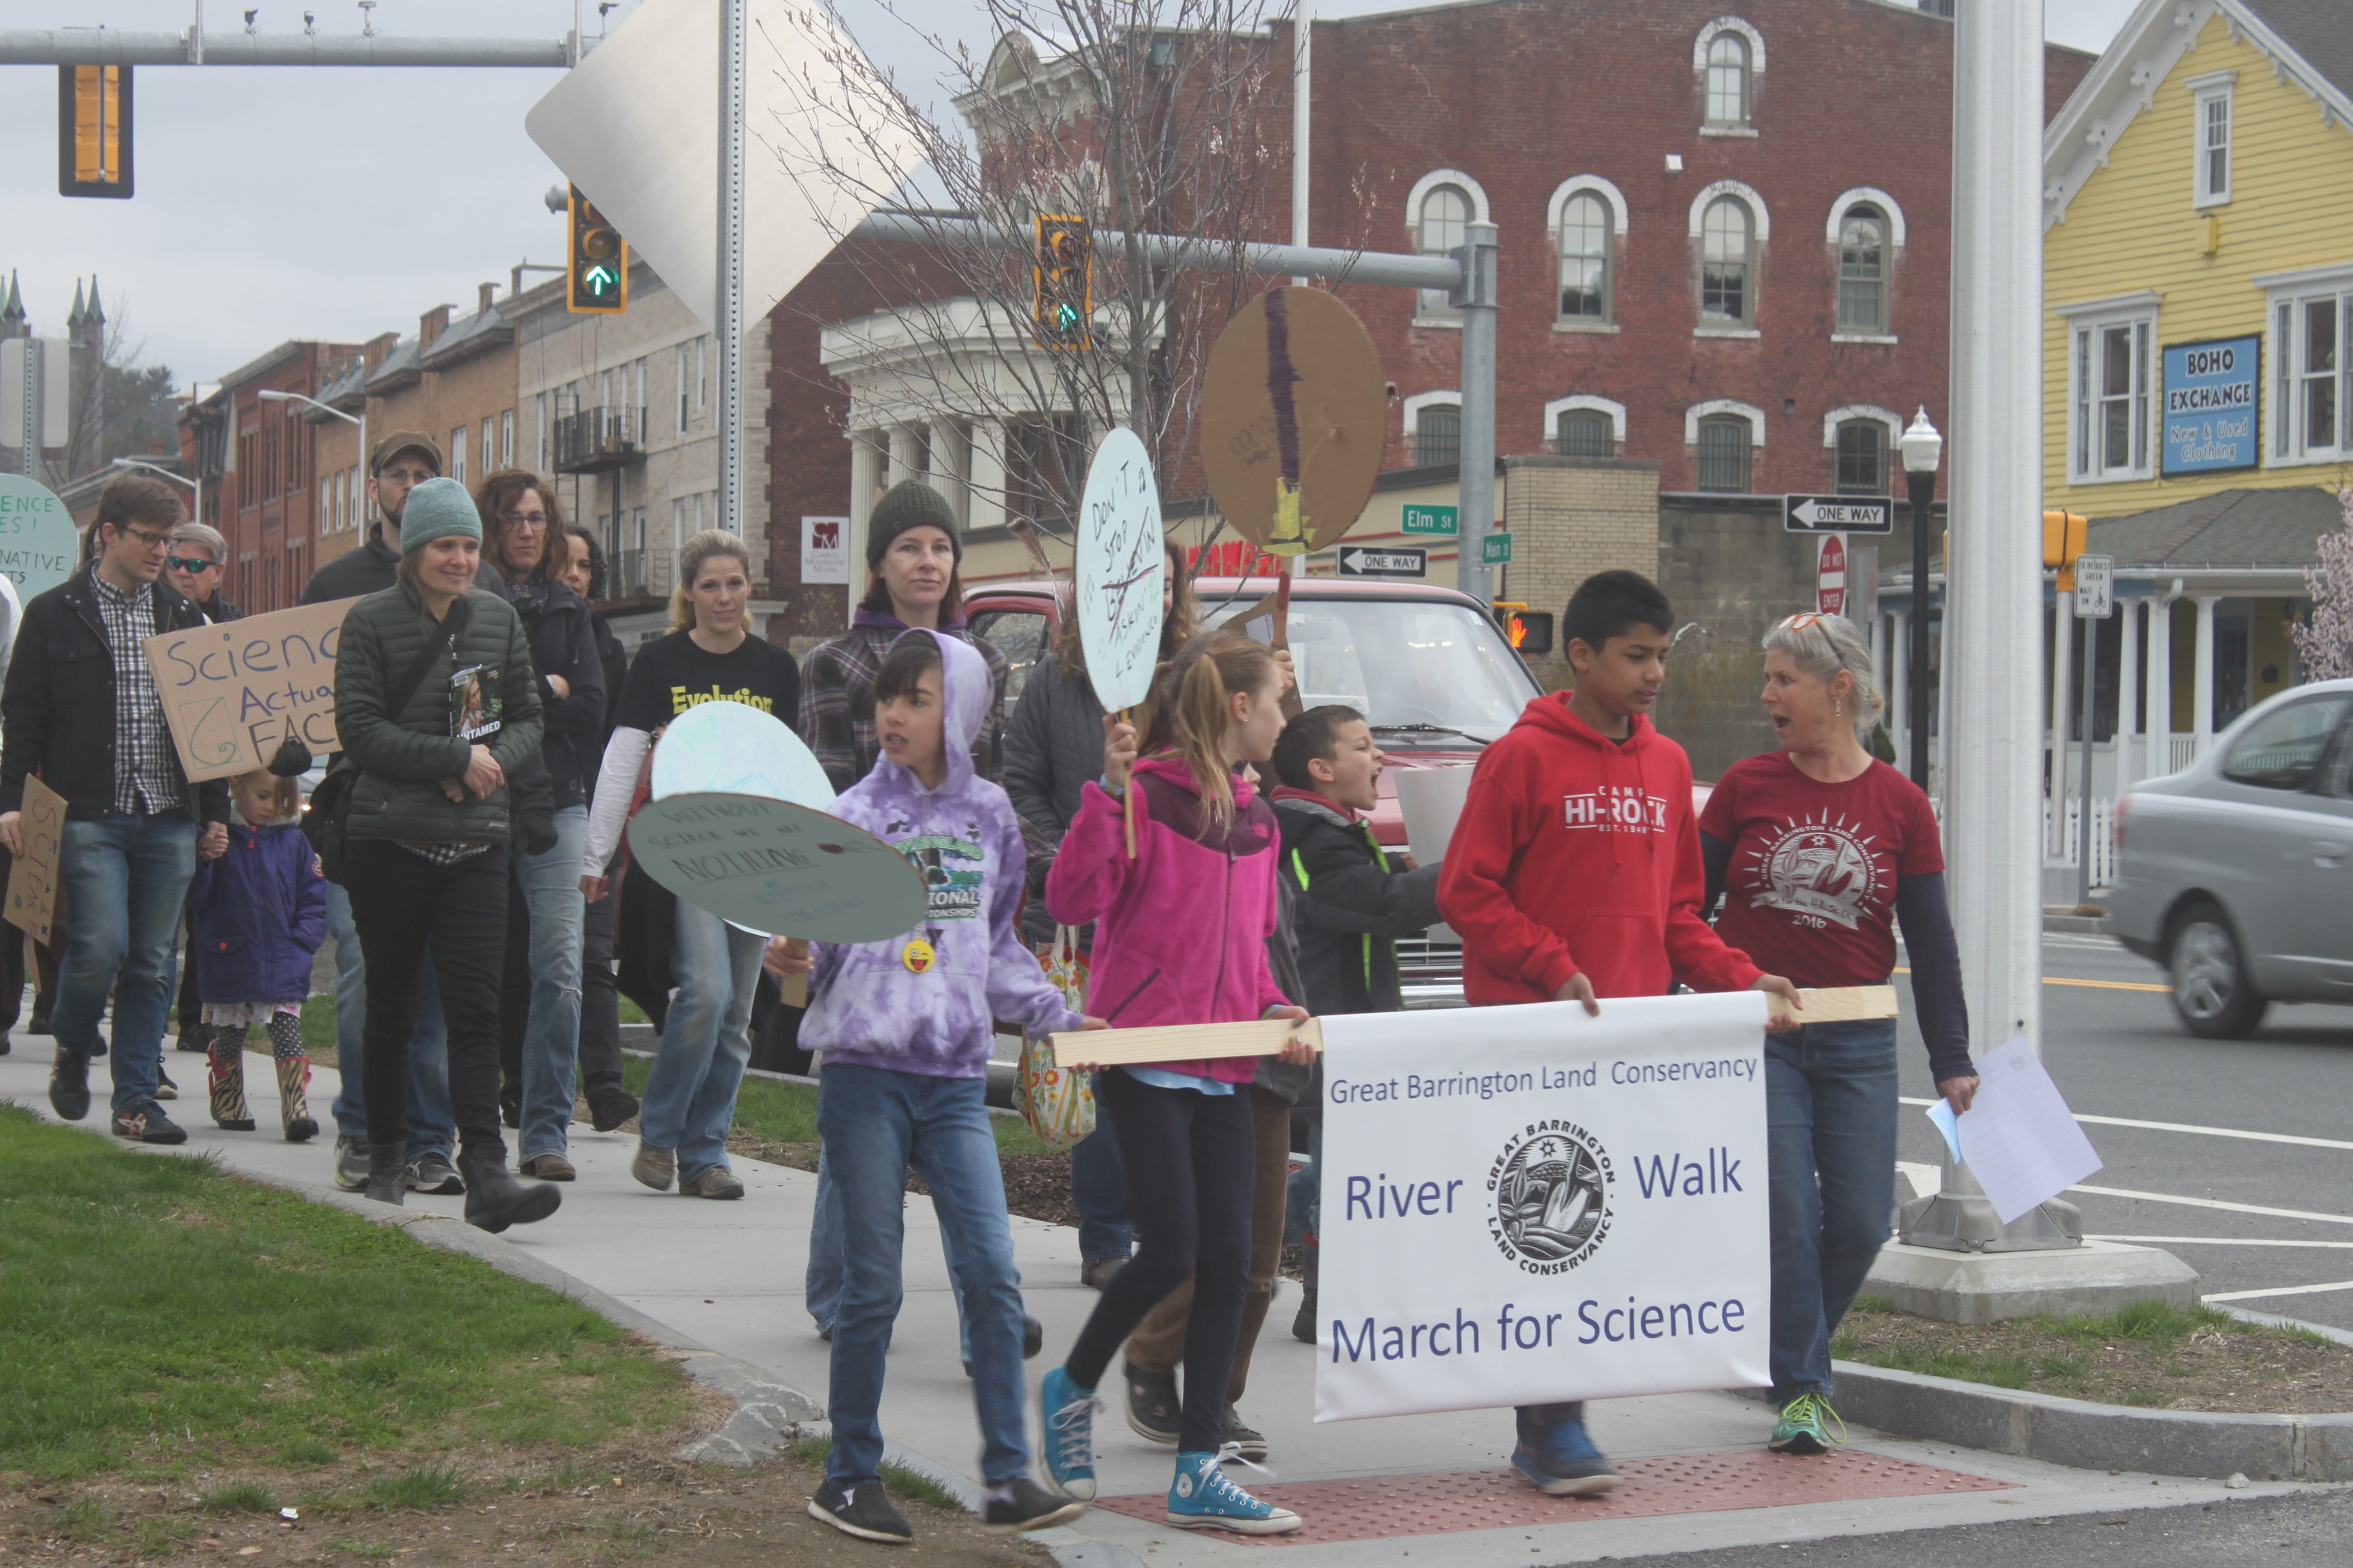 River Walk March for Science on Main Street Great Barrington, MA